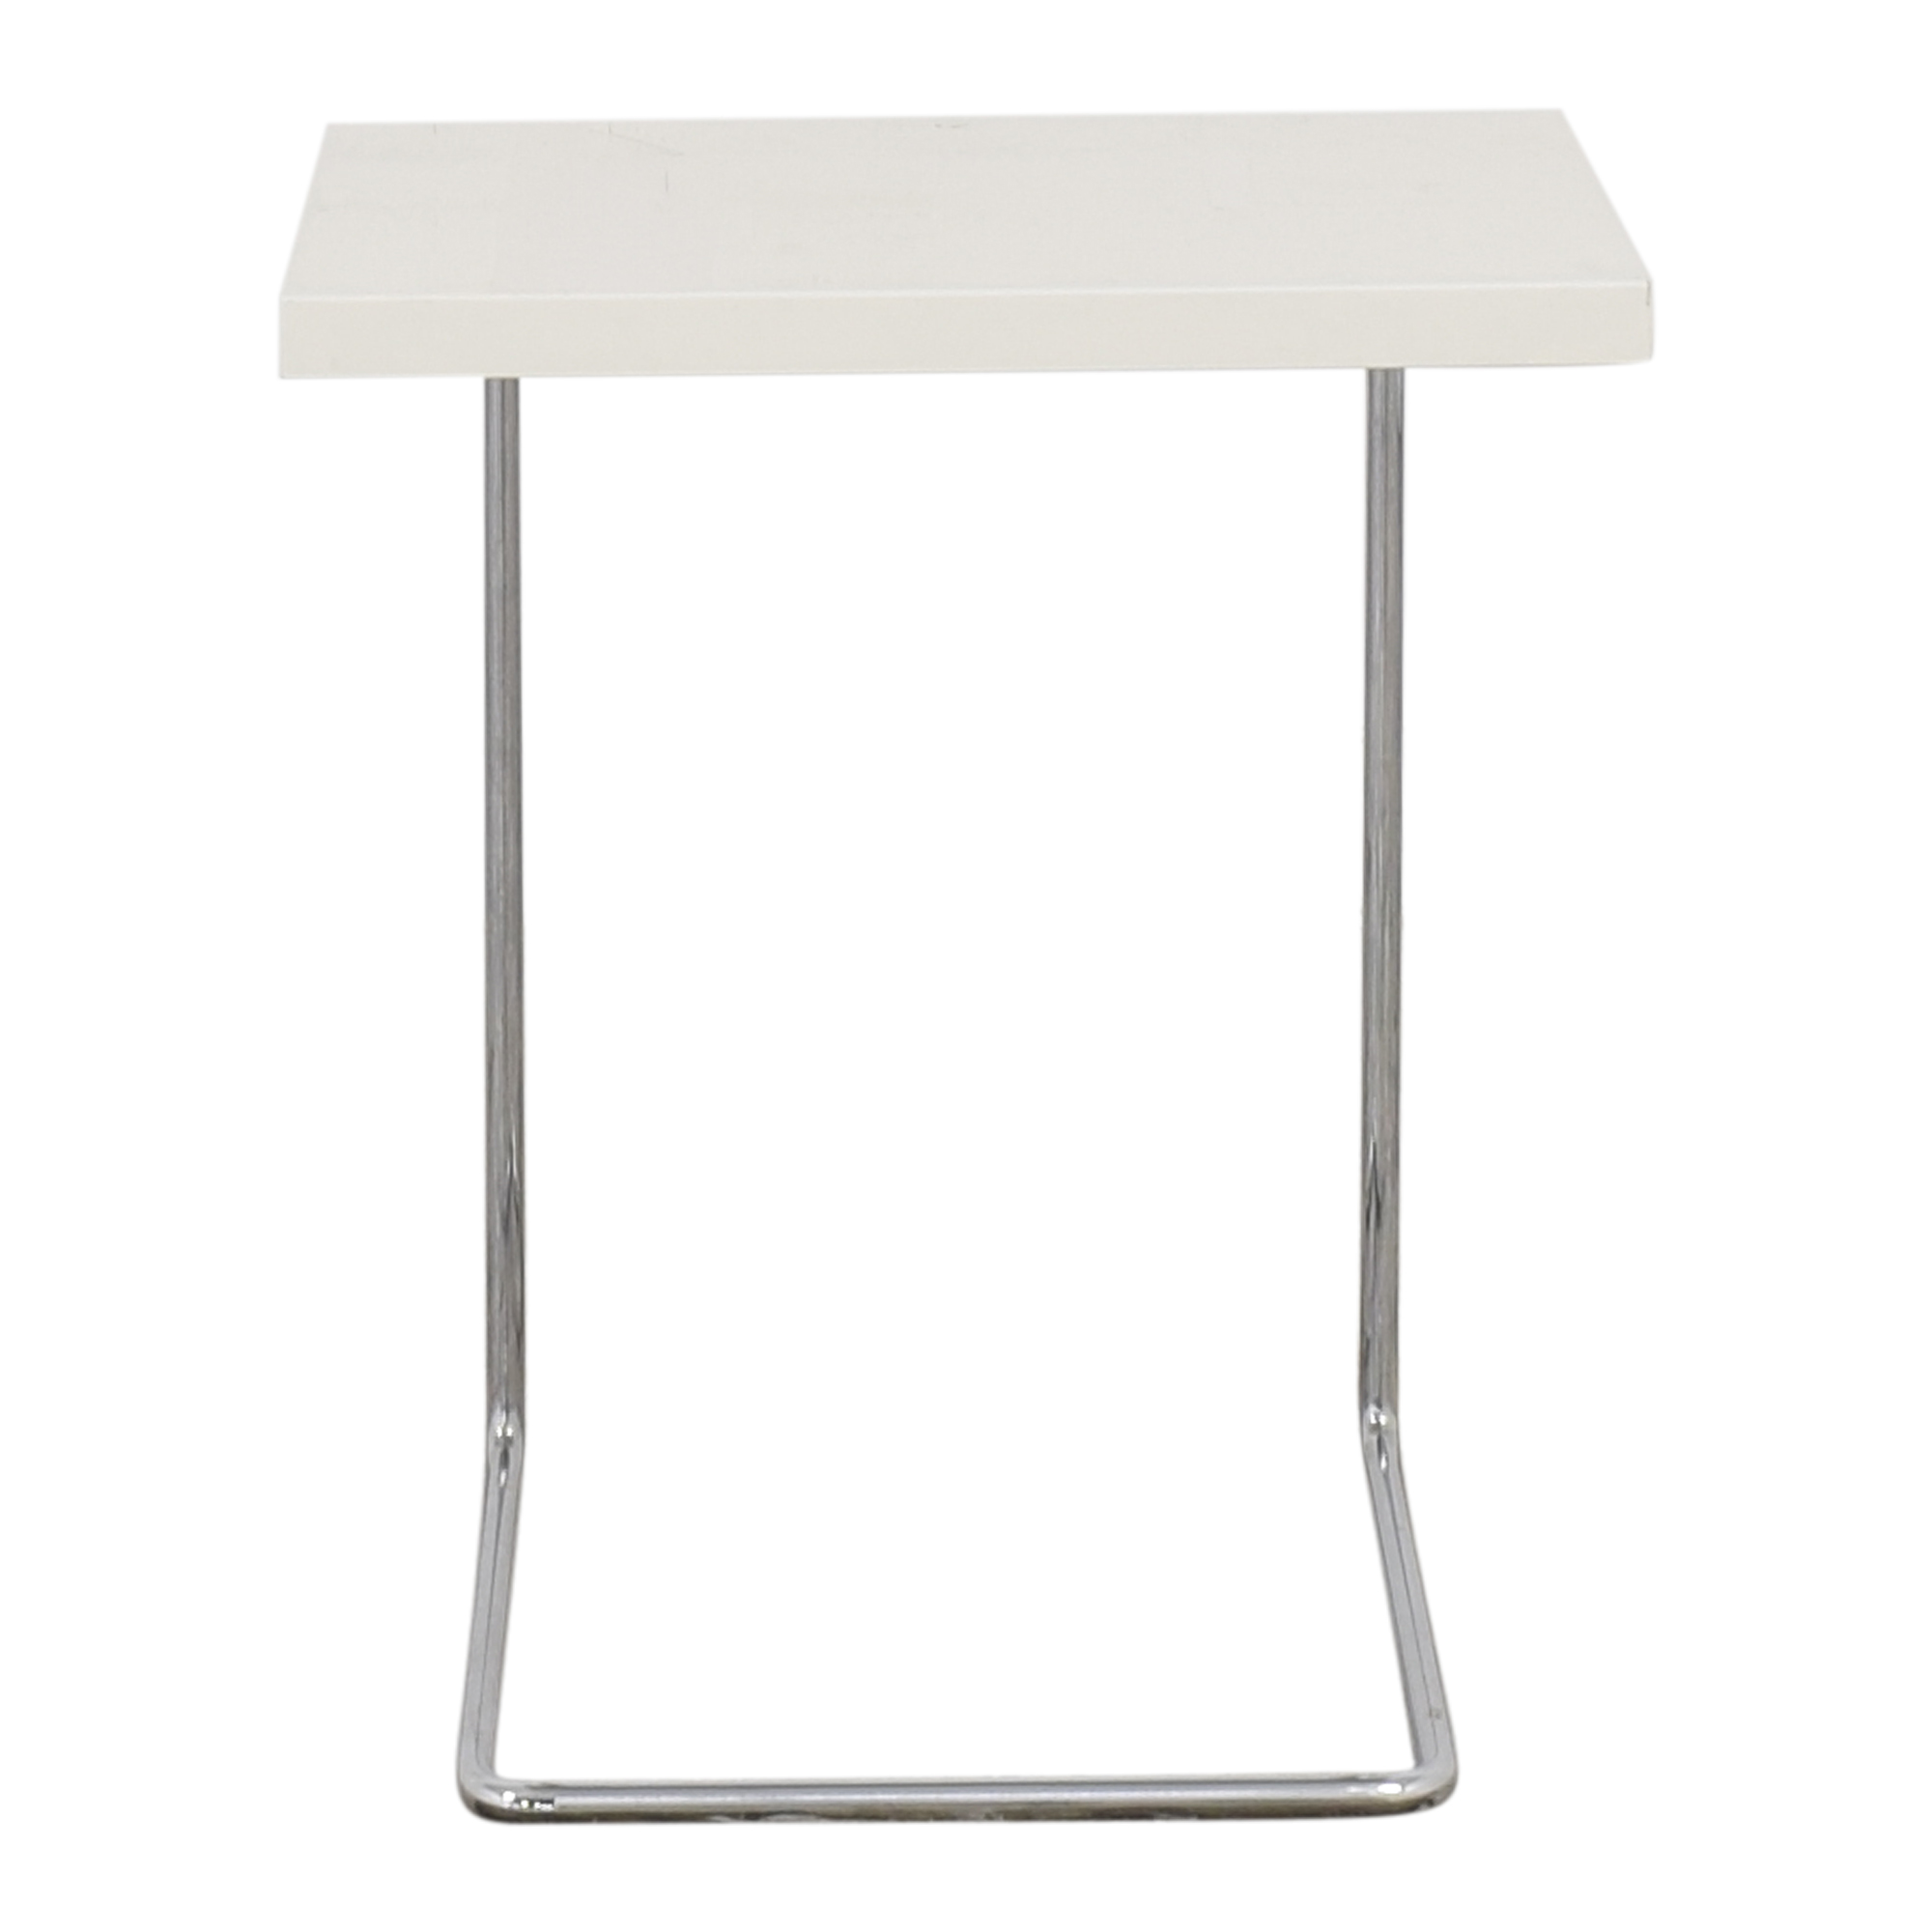 Koleksiyon Koleksiyon Bremen End Table price